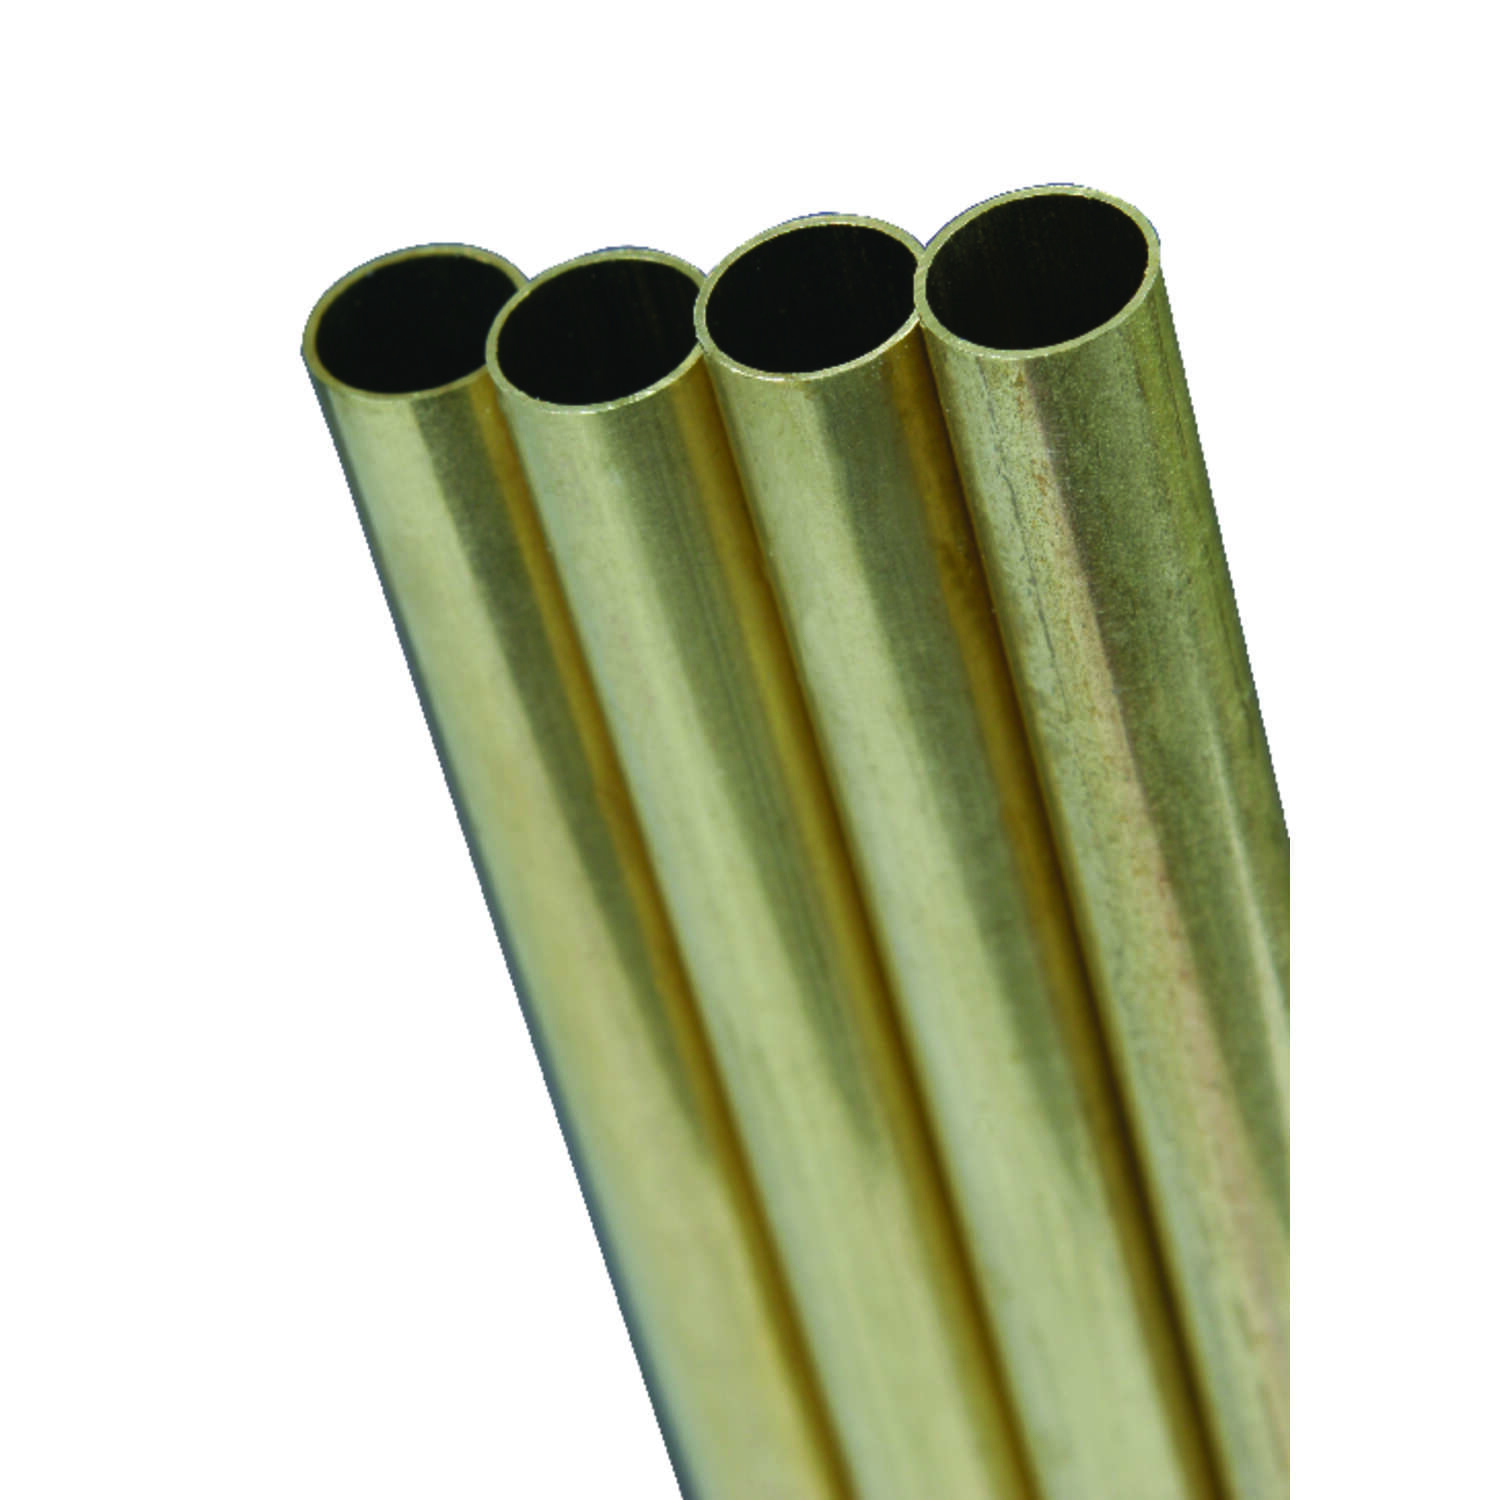 K&S  19/32 in. Dia. x 12 in. L Round  Brass Tube  1 pk